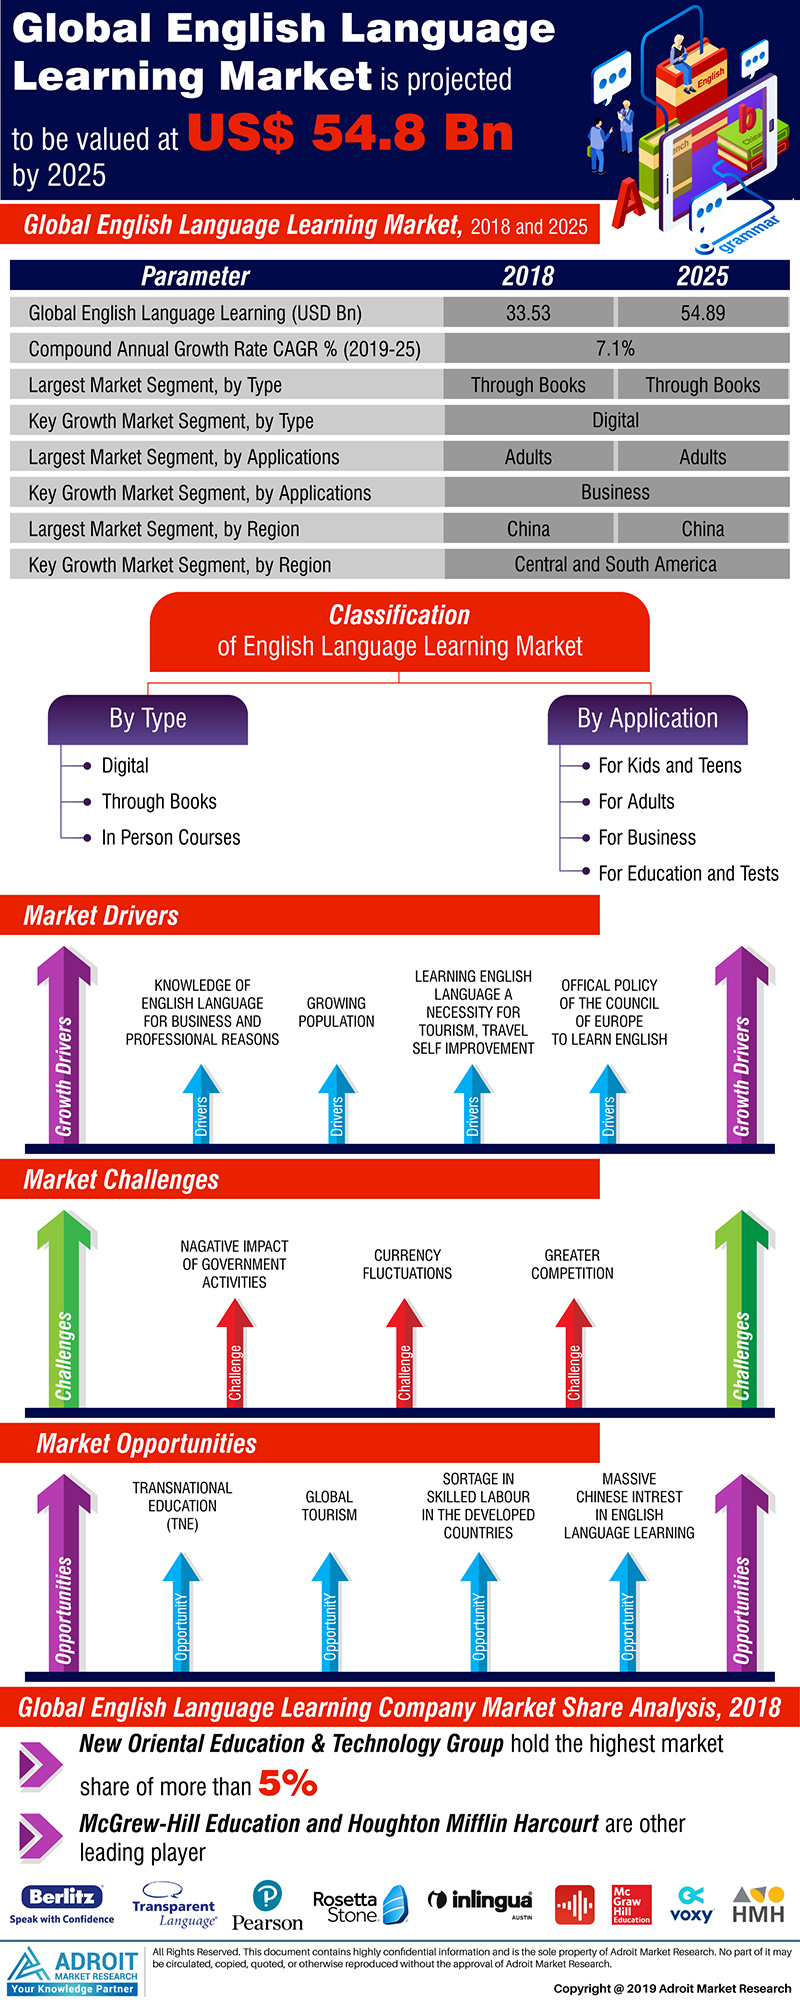 Global English Language Learning Market Size 2017 By Application, Type, Region and Forecast 2019 to 2025